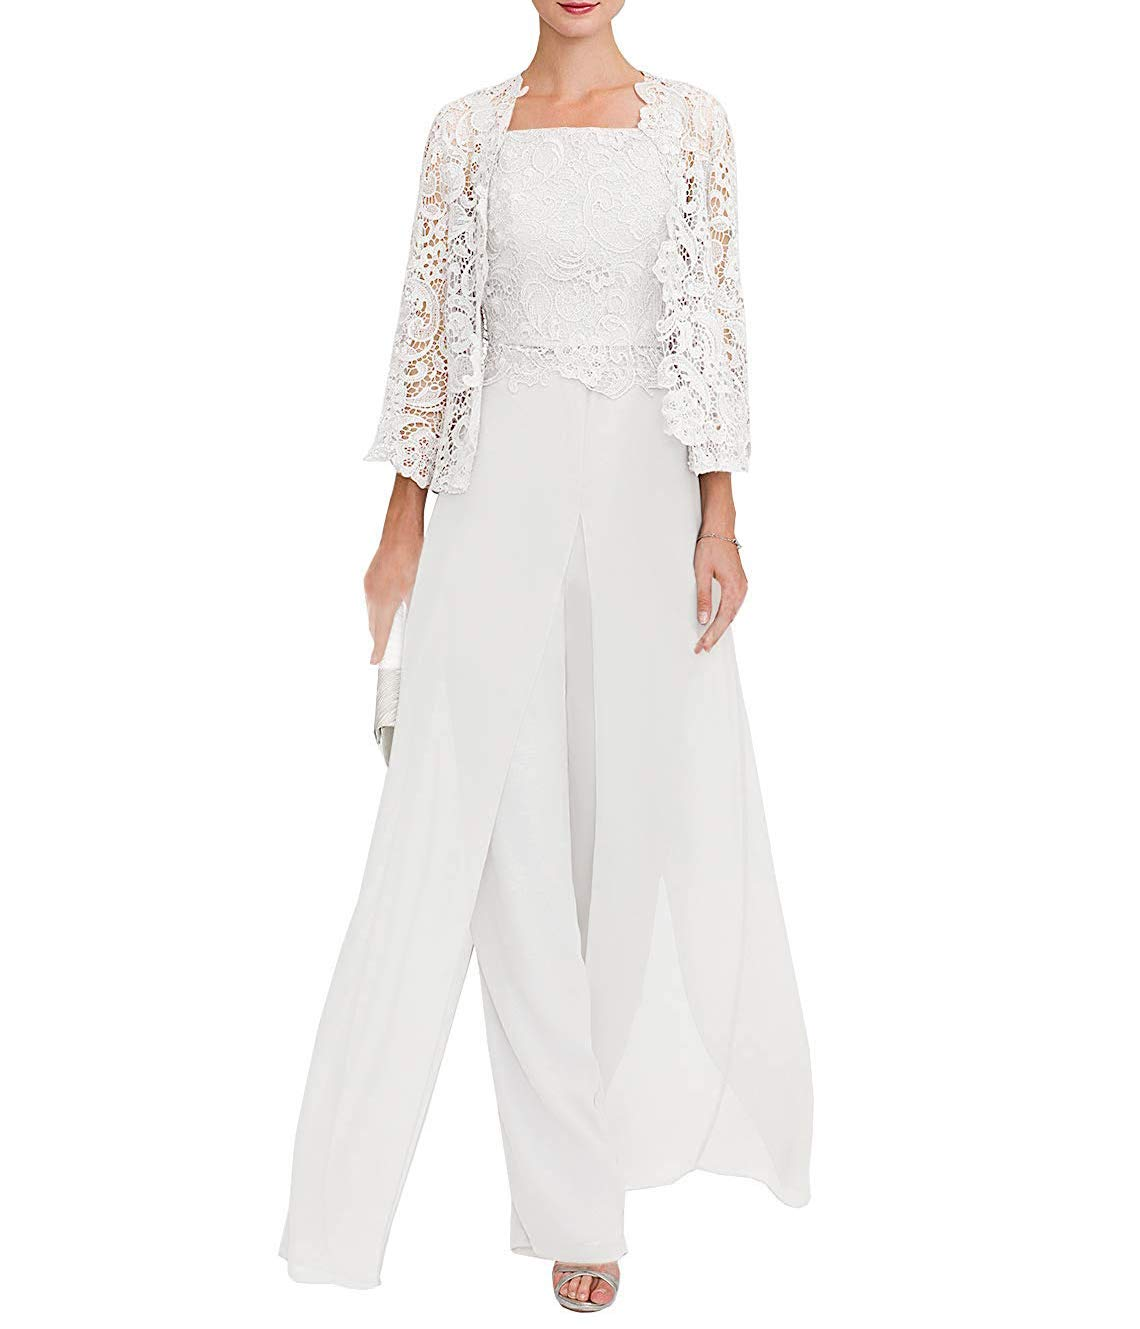 Clothsure Womens Lace Dress 3 Piece Mother Of The Bride Pant Suits Long Sleeve With Jacket Evening Cocktail Dresses White